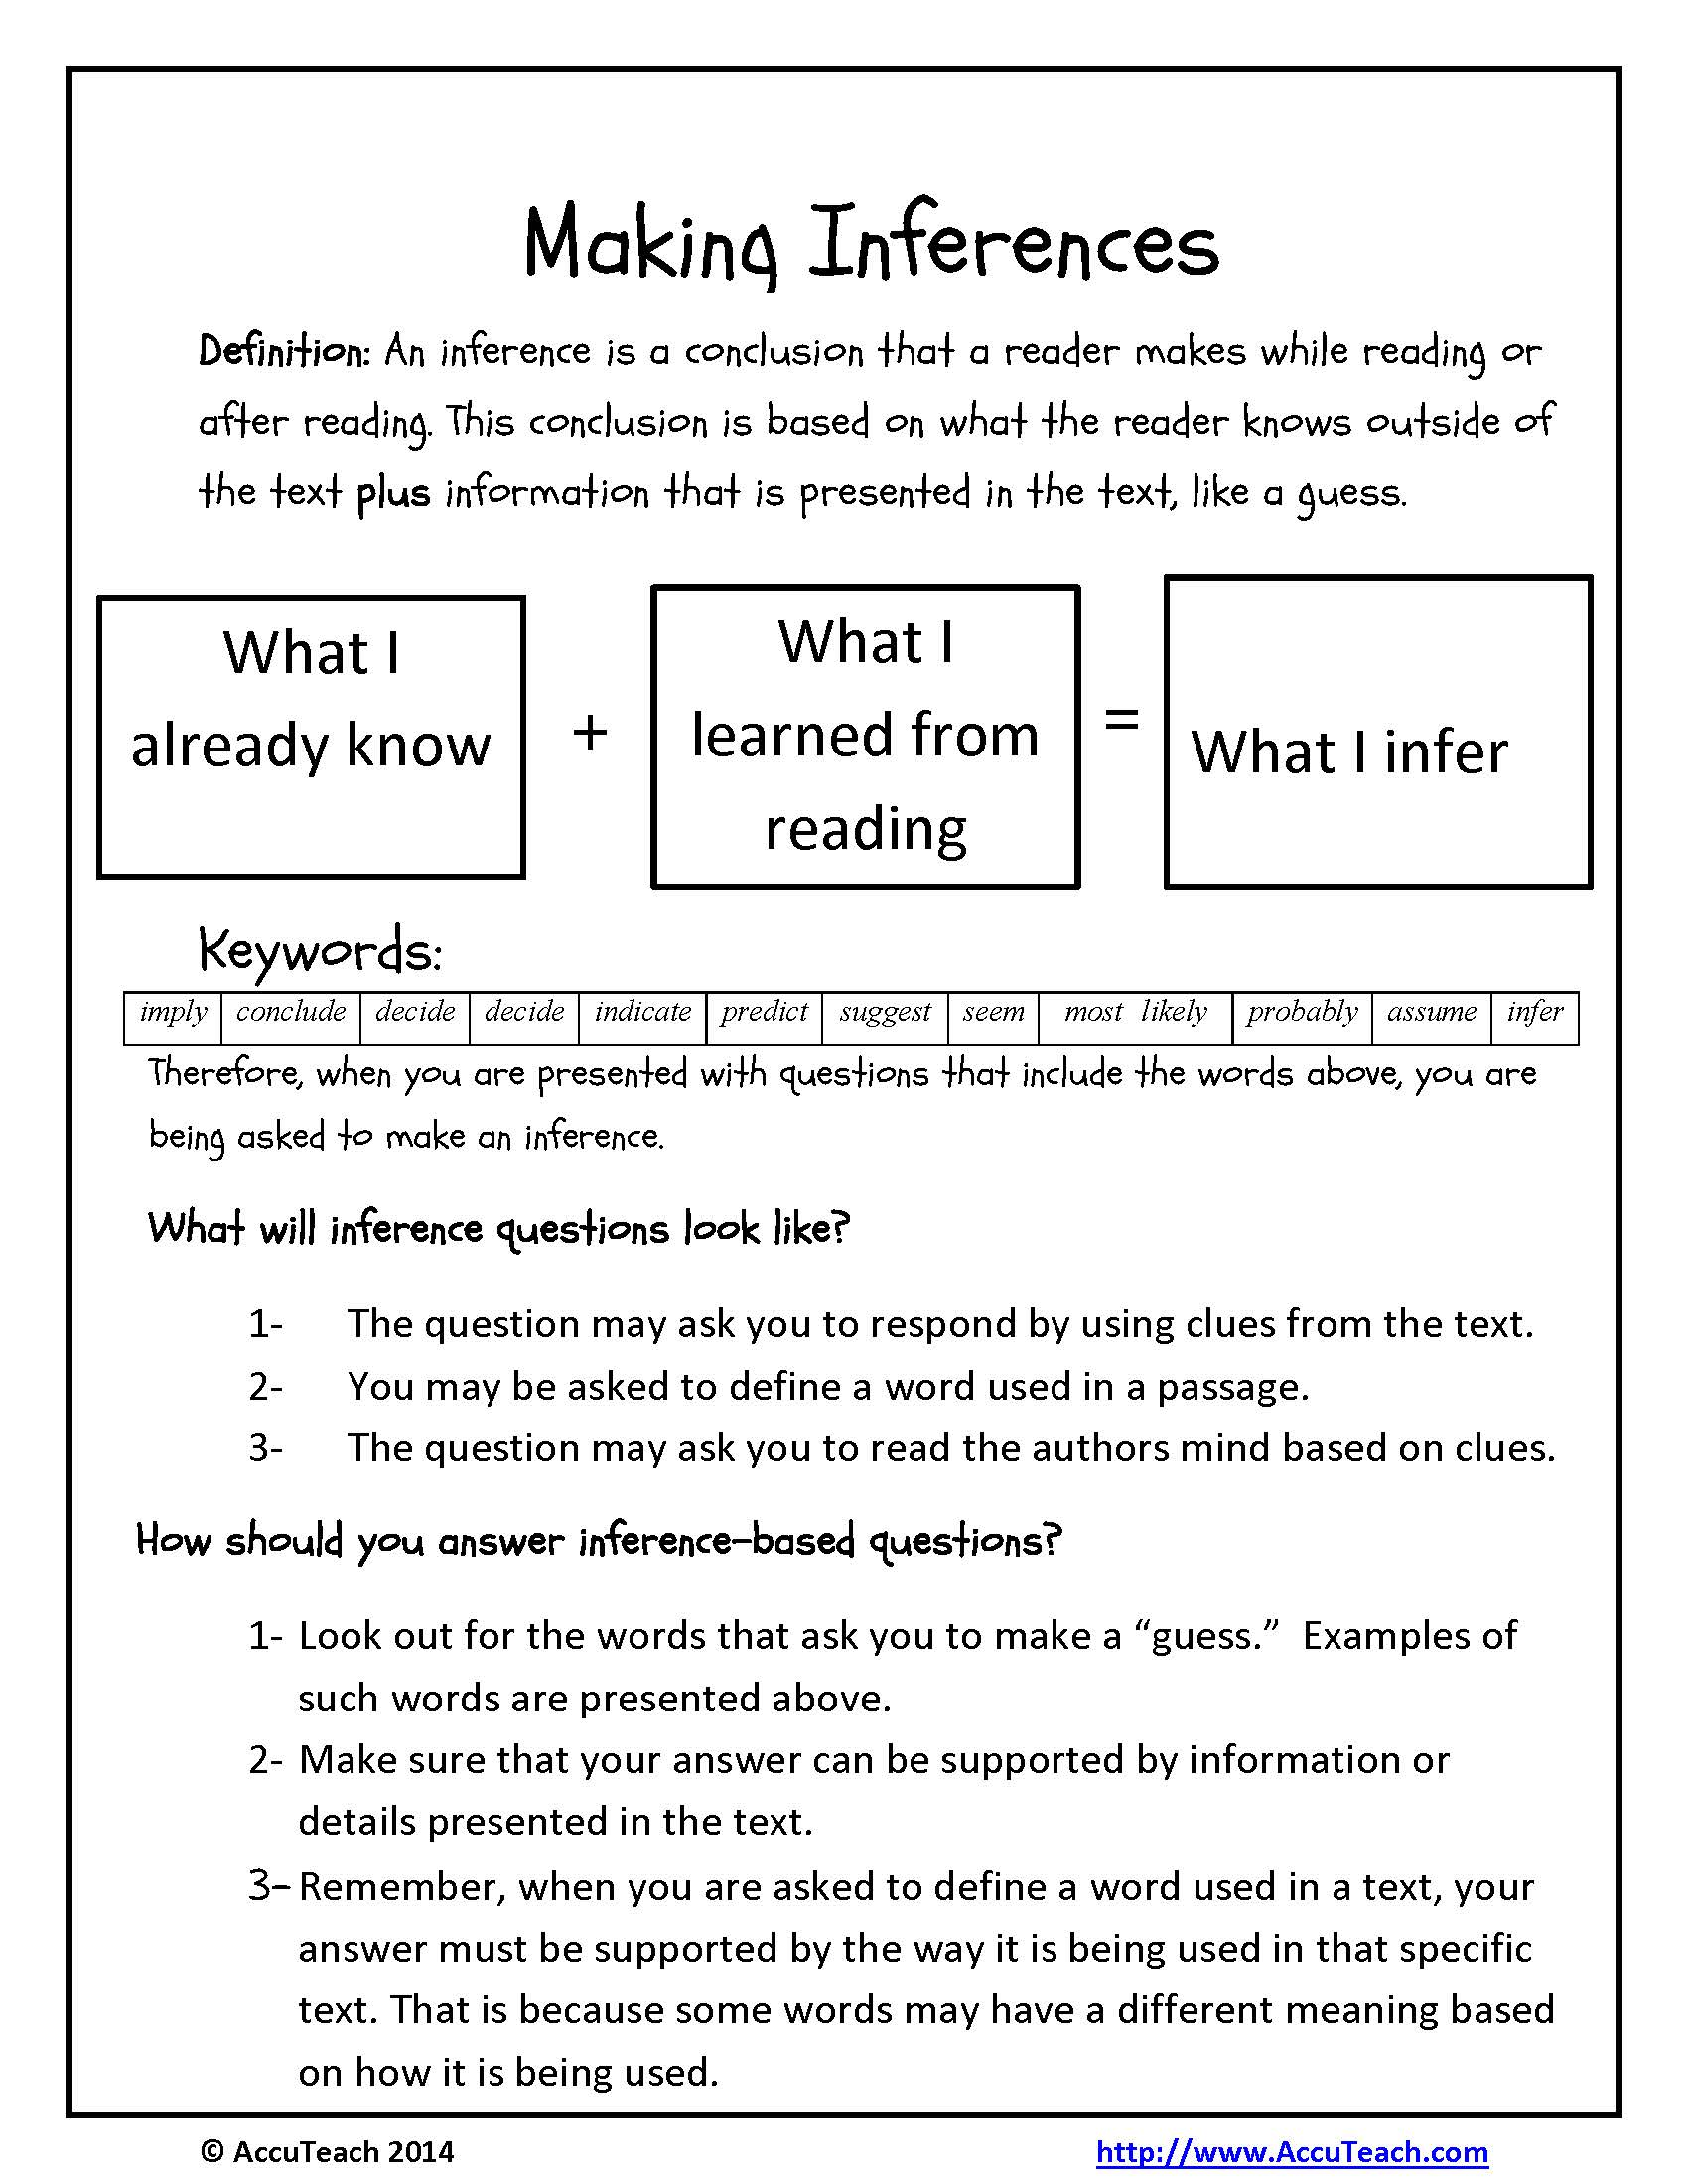 Worksheets Reading Comprehension Strategies Worksheets making inferences reading comprehension strategy inferences